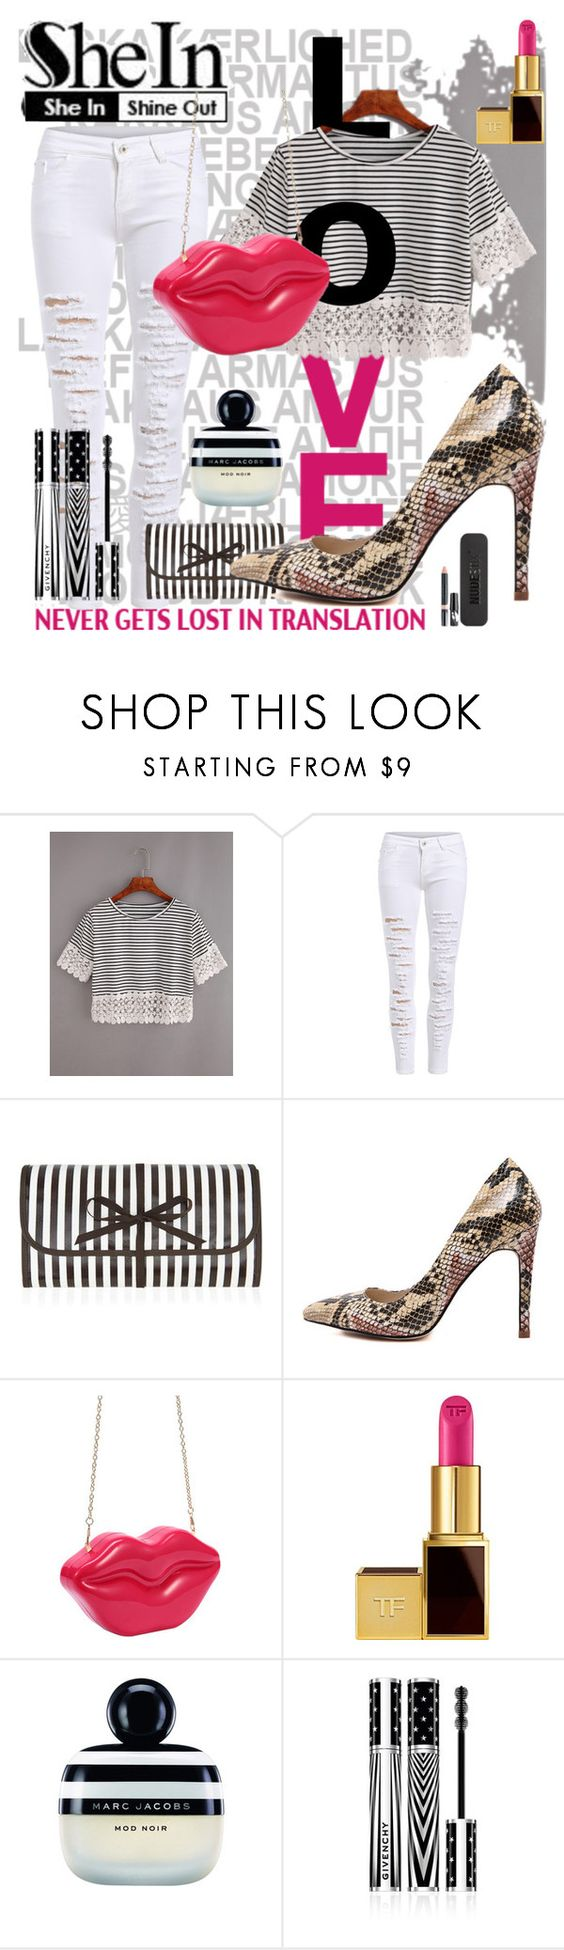 """""""LOVE IN SHEIN"""" by beleev ❤ liked on Polyvore featuring Henri Bendel, Tom Ford, Marc Jacobs, Givenchy and Nudestix"""